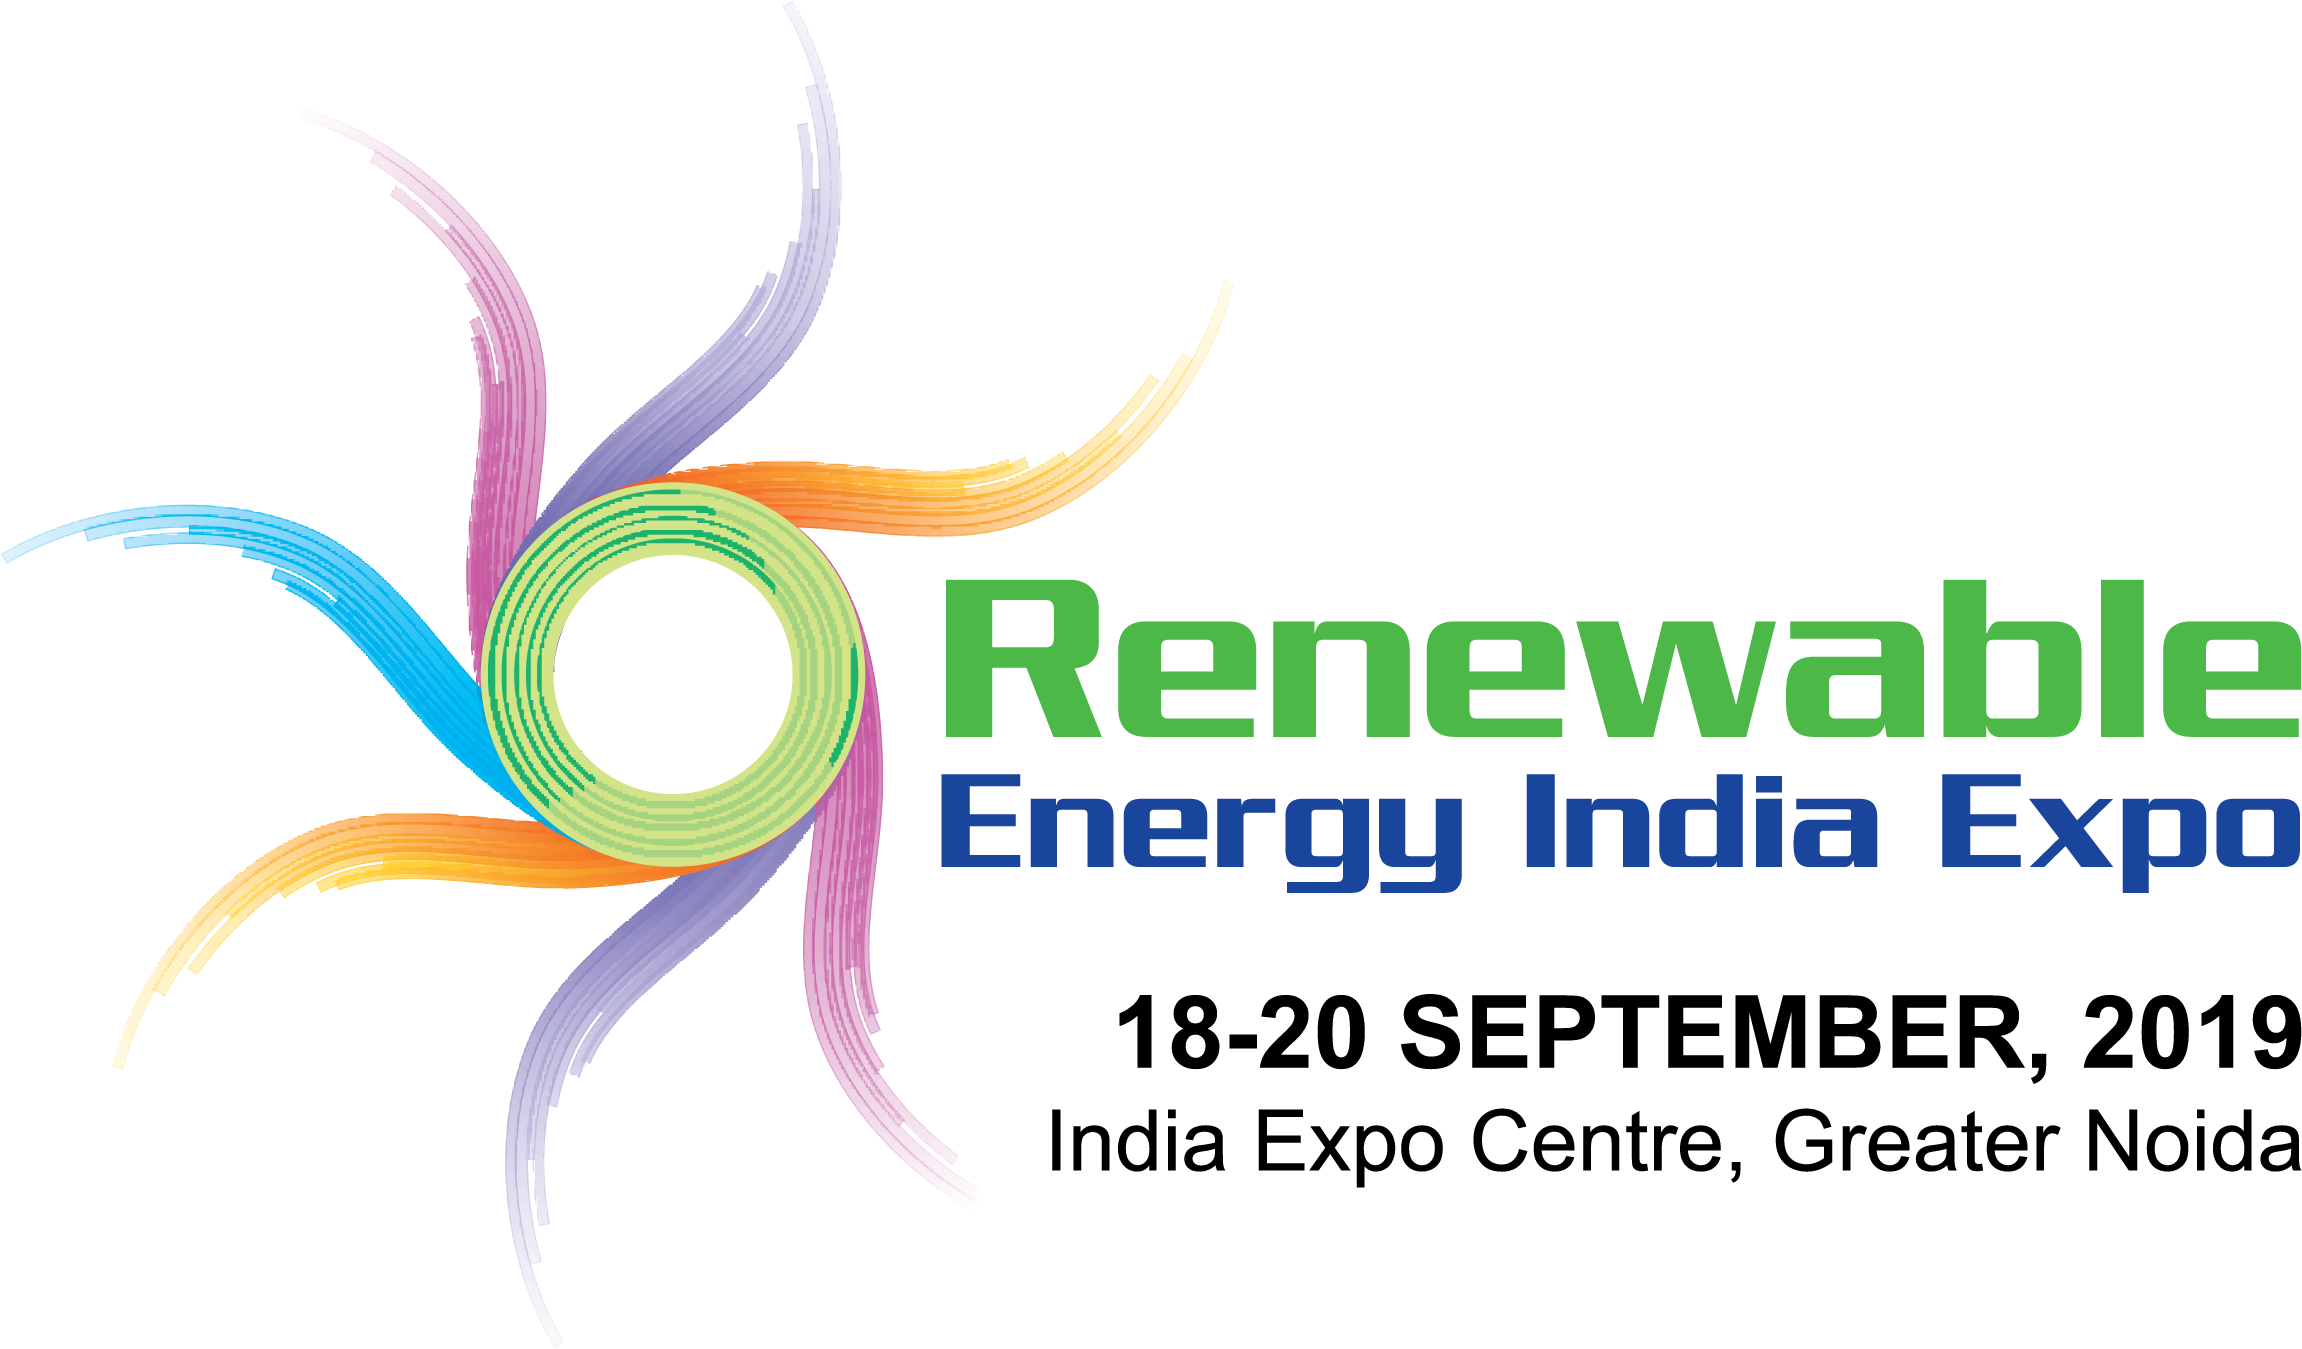 HENGXING Technology once again participated in the Renewable Energy India Expo